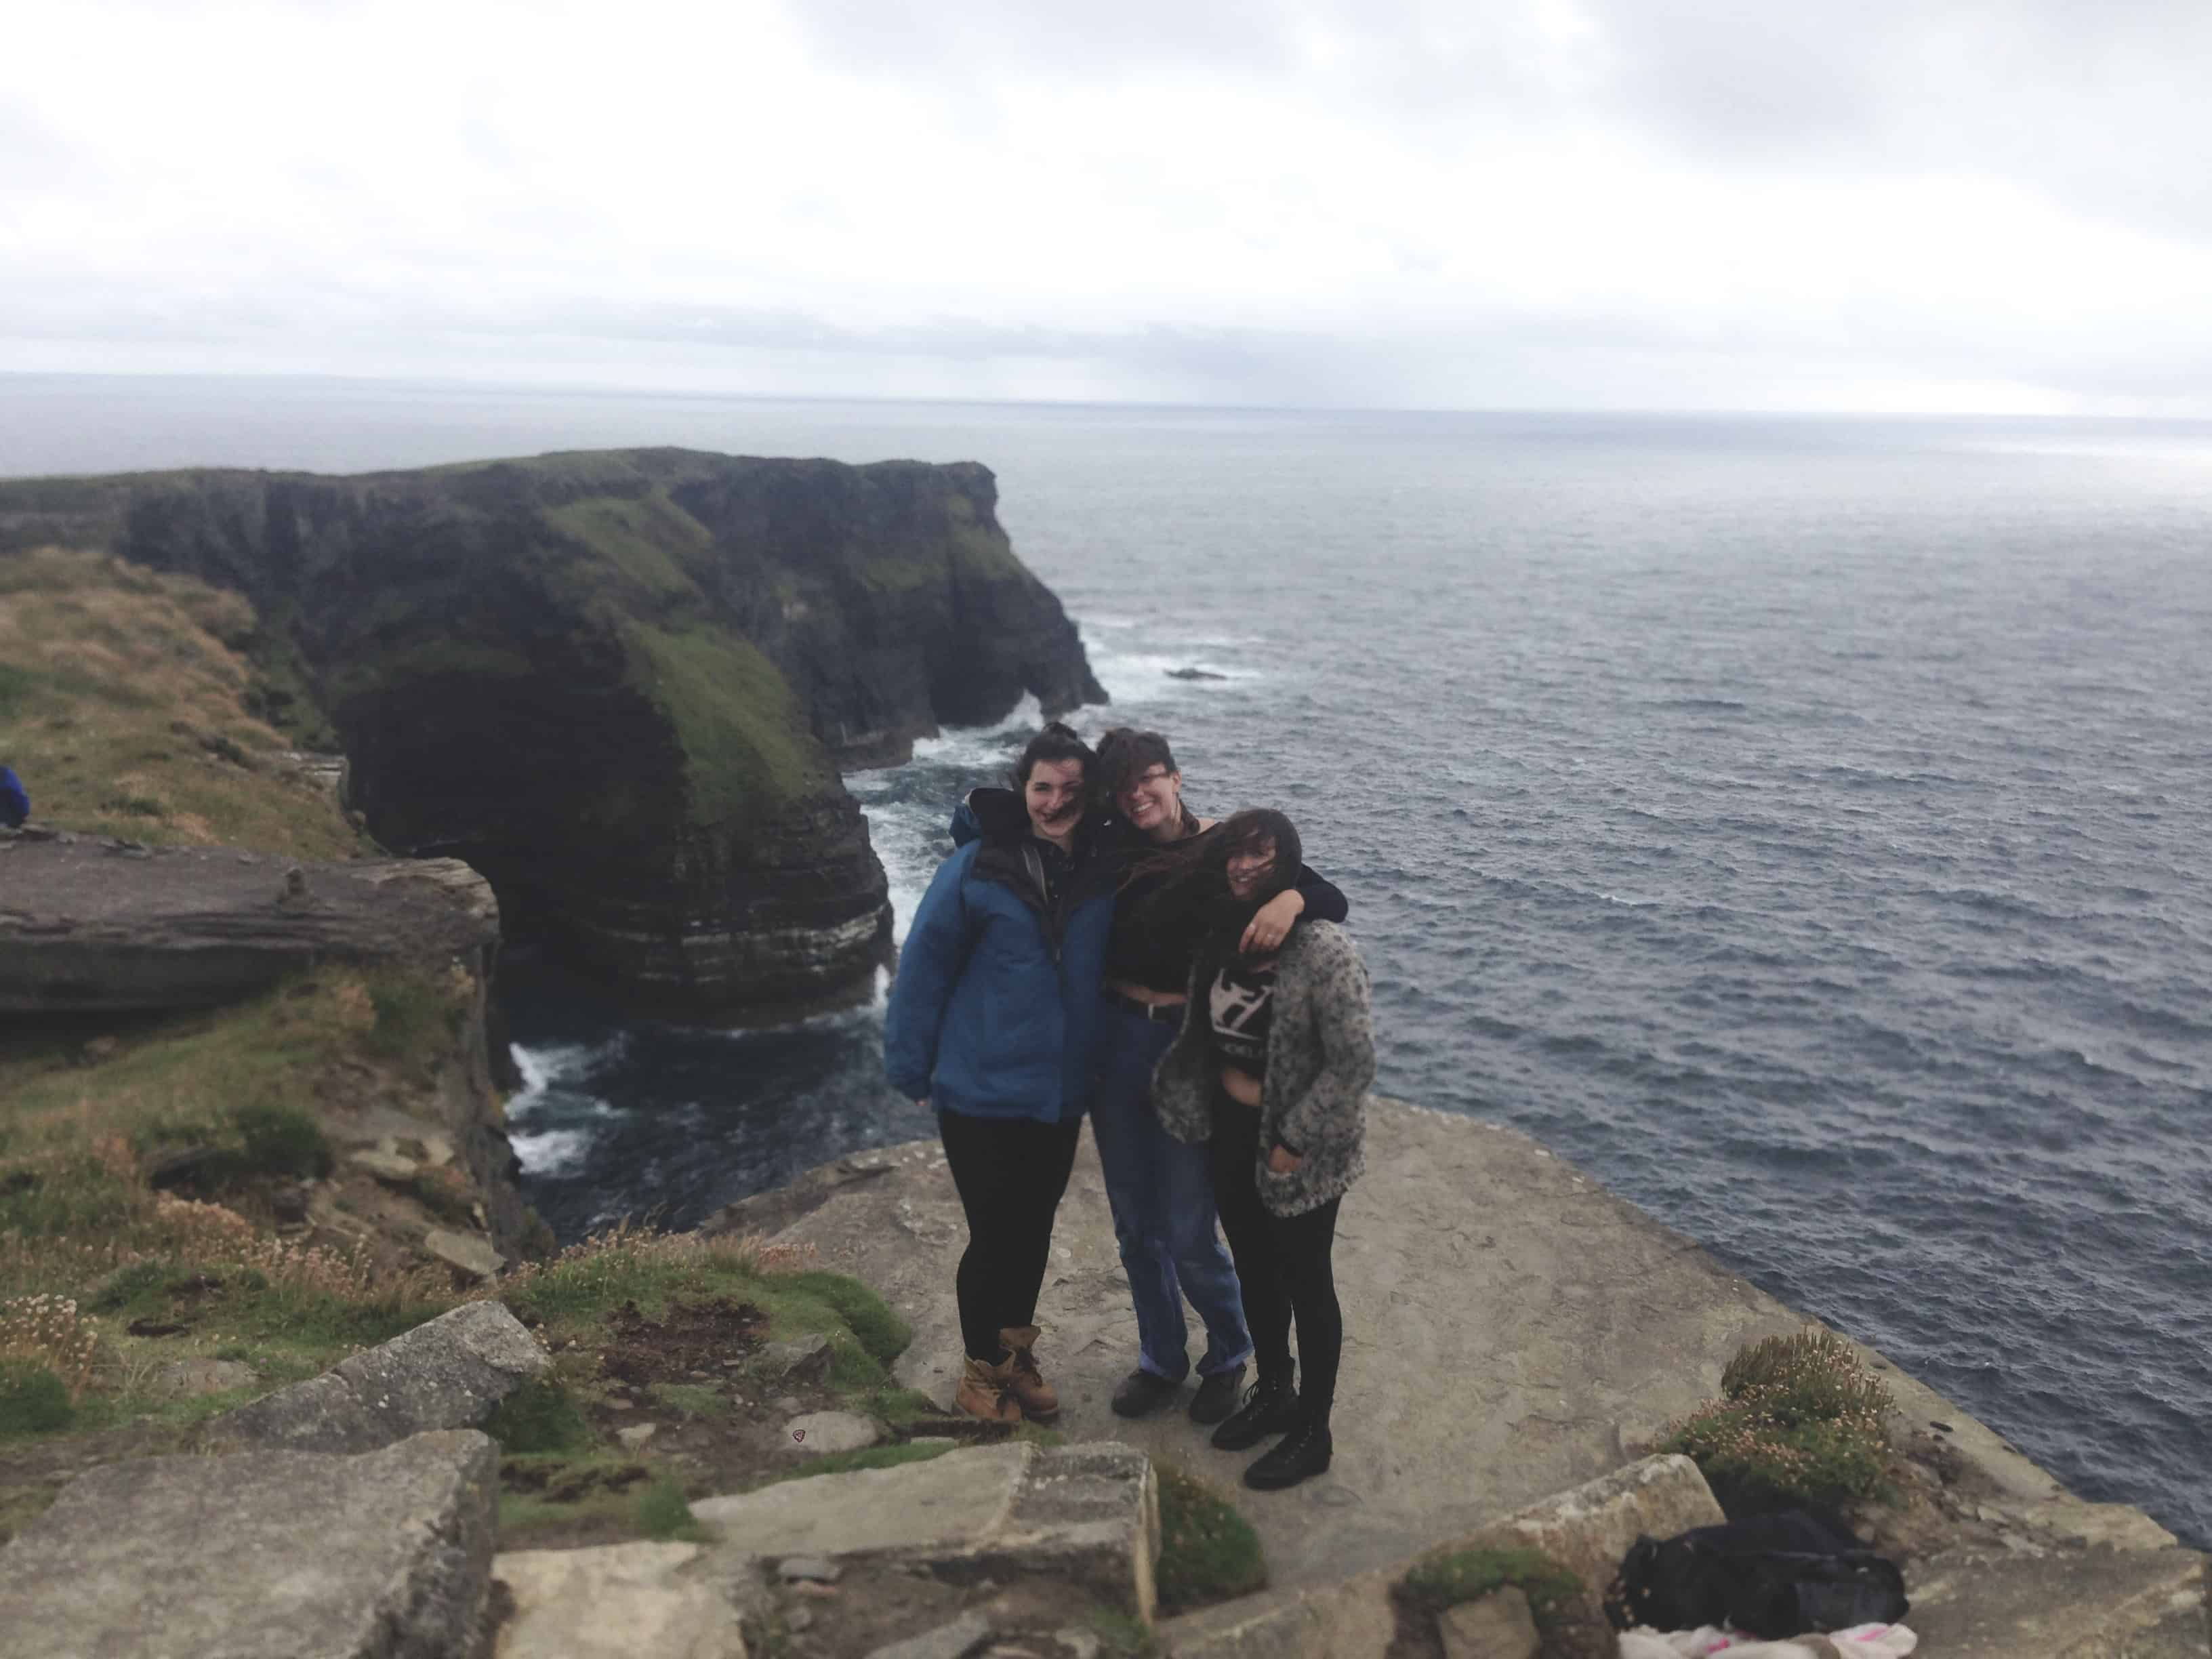 The Cliffs of Moher in Ireland on a cloudy and windy day - one of our stops while hitchhiking